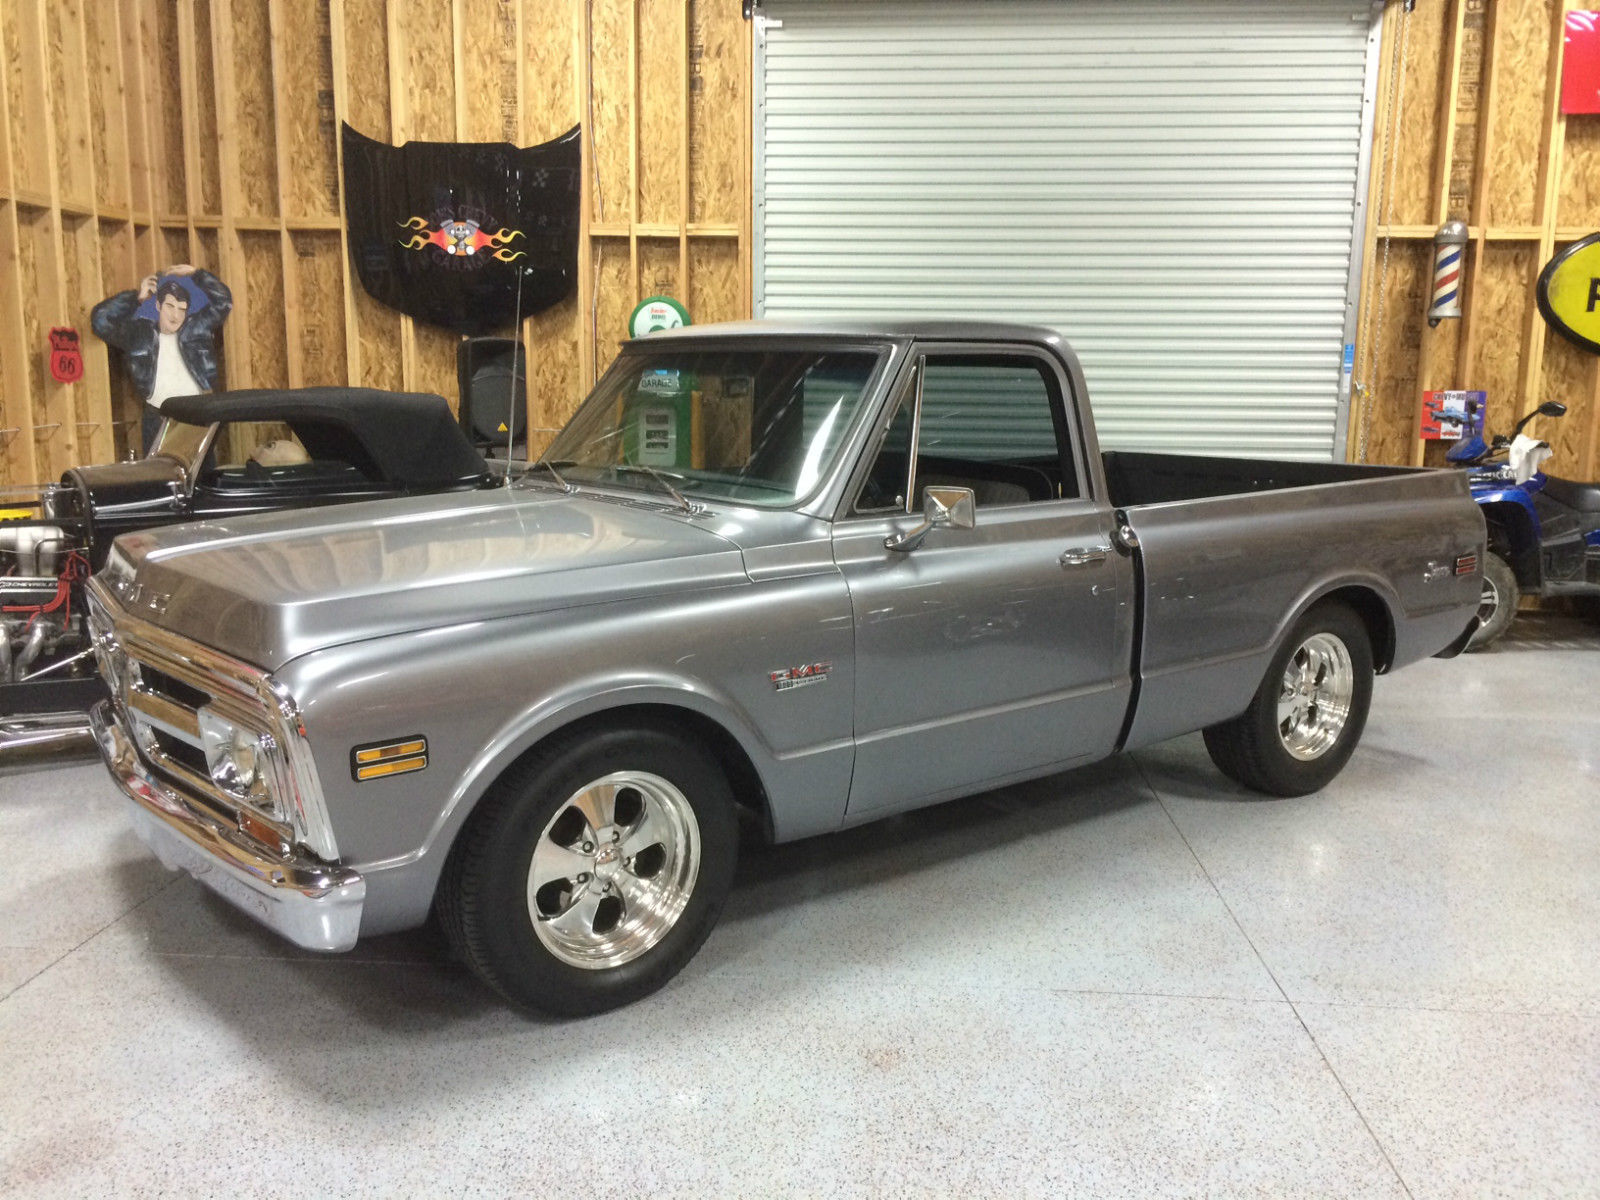 1971 gmc truck 1970 chevy truck shortbed hot rod classic gmc other 1971 for sale. Black Bedroom Furniture Sets. Home Design Ideas